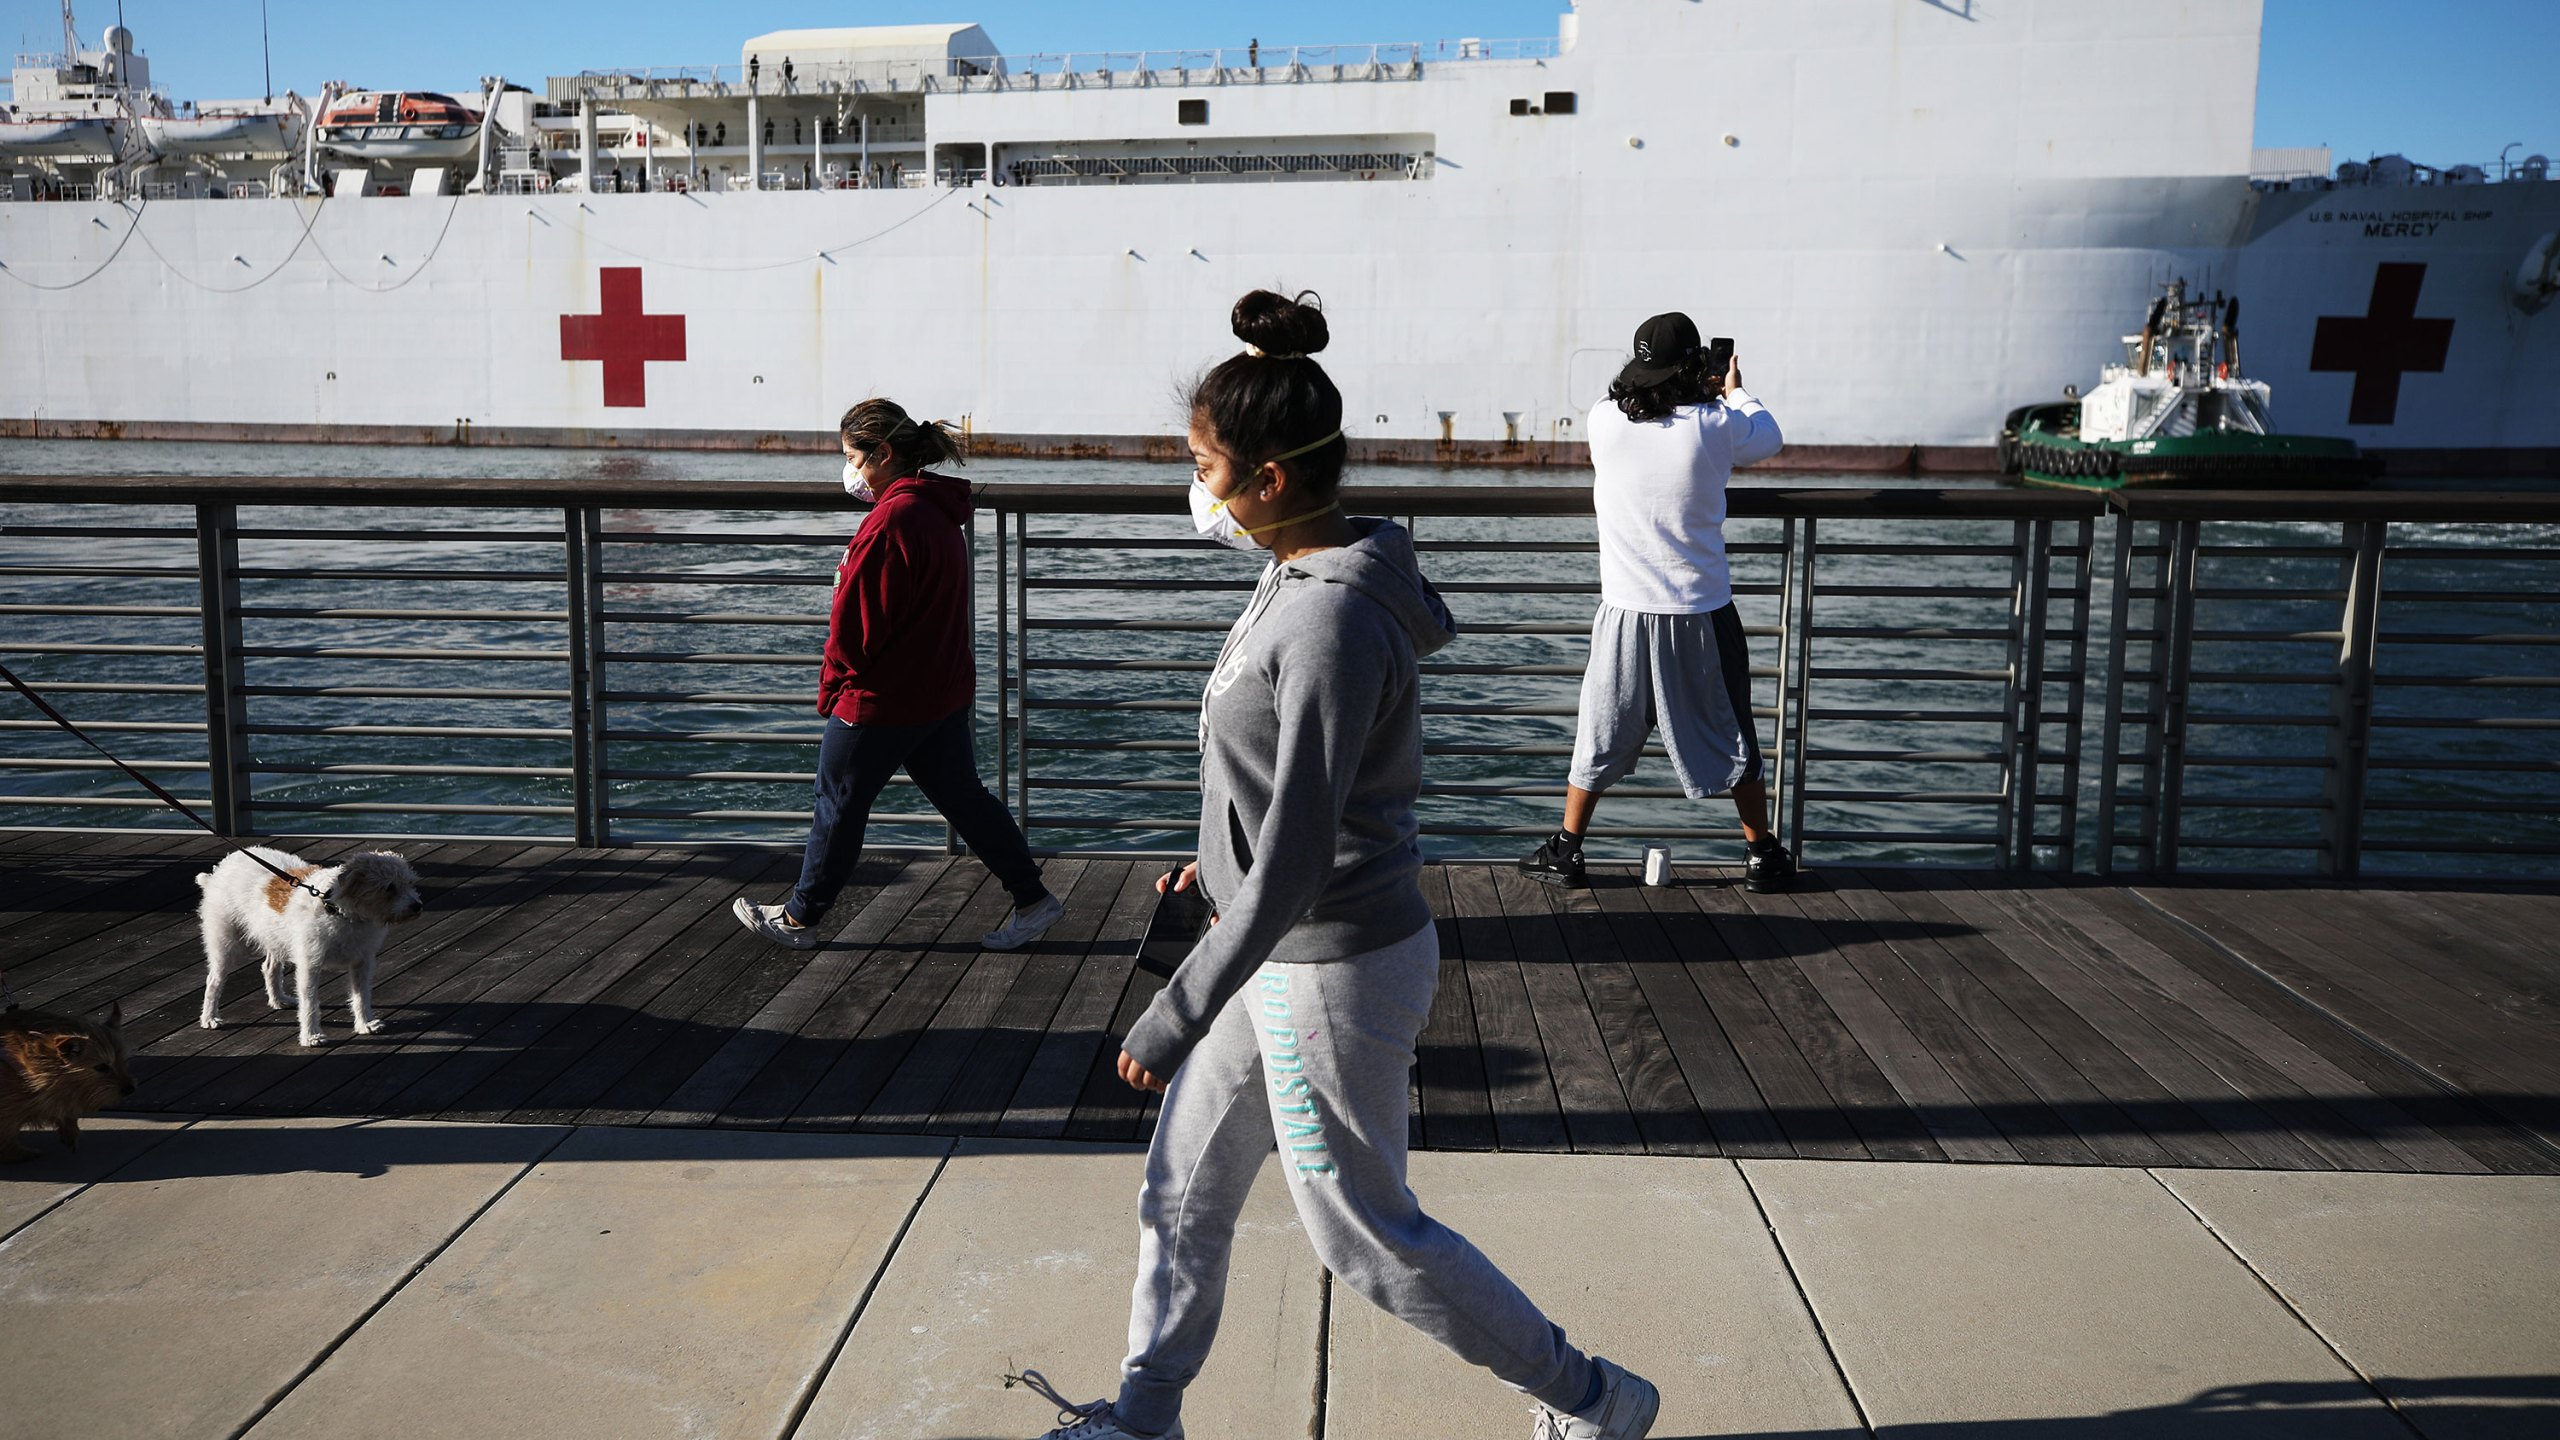 People wearing face masks walk near the USNS Mercy Navy hospital ship after it arrived in the Port of Los Angeles to assist with the coronavirus pandemic on March 27, 2020 in San Pedro. (Mario Tama/Getty Images)